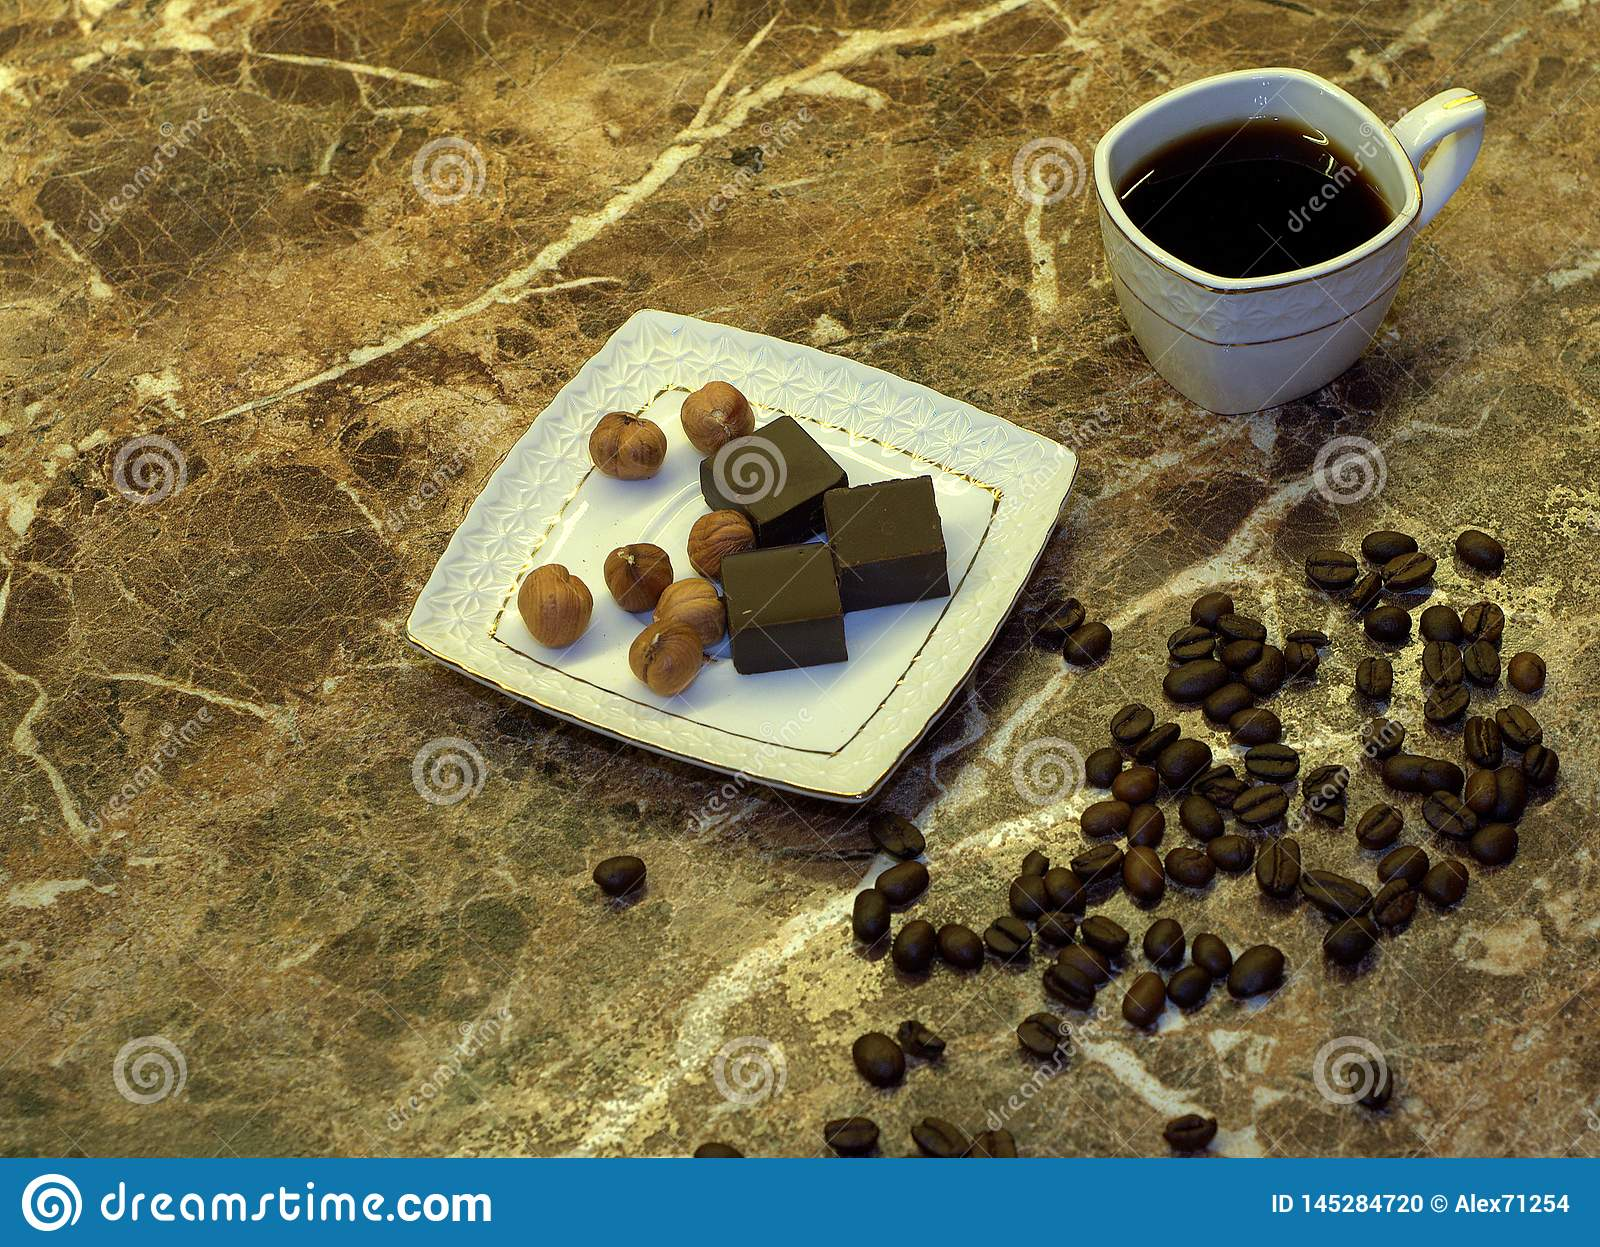 A cup of black coffee in a white porcelain cup, chocolates on a saucer and coffee beans are on a table made of beige marble. Close